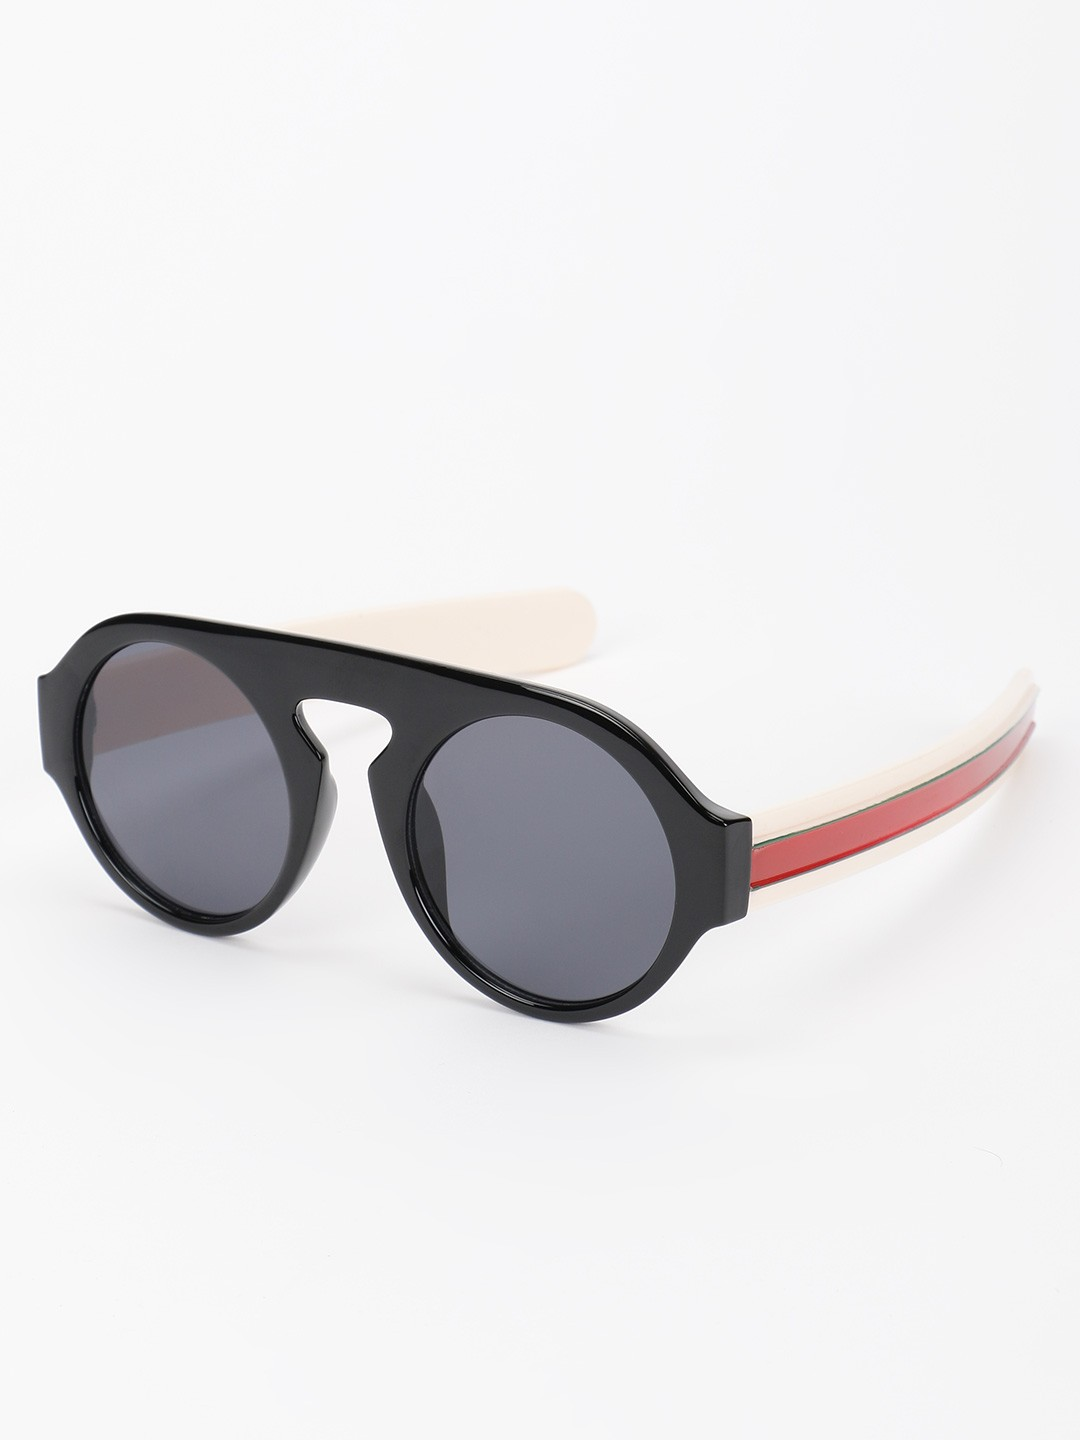 Pataaka Black Textured Frame Round Sunglasses 1